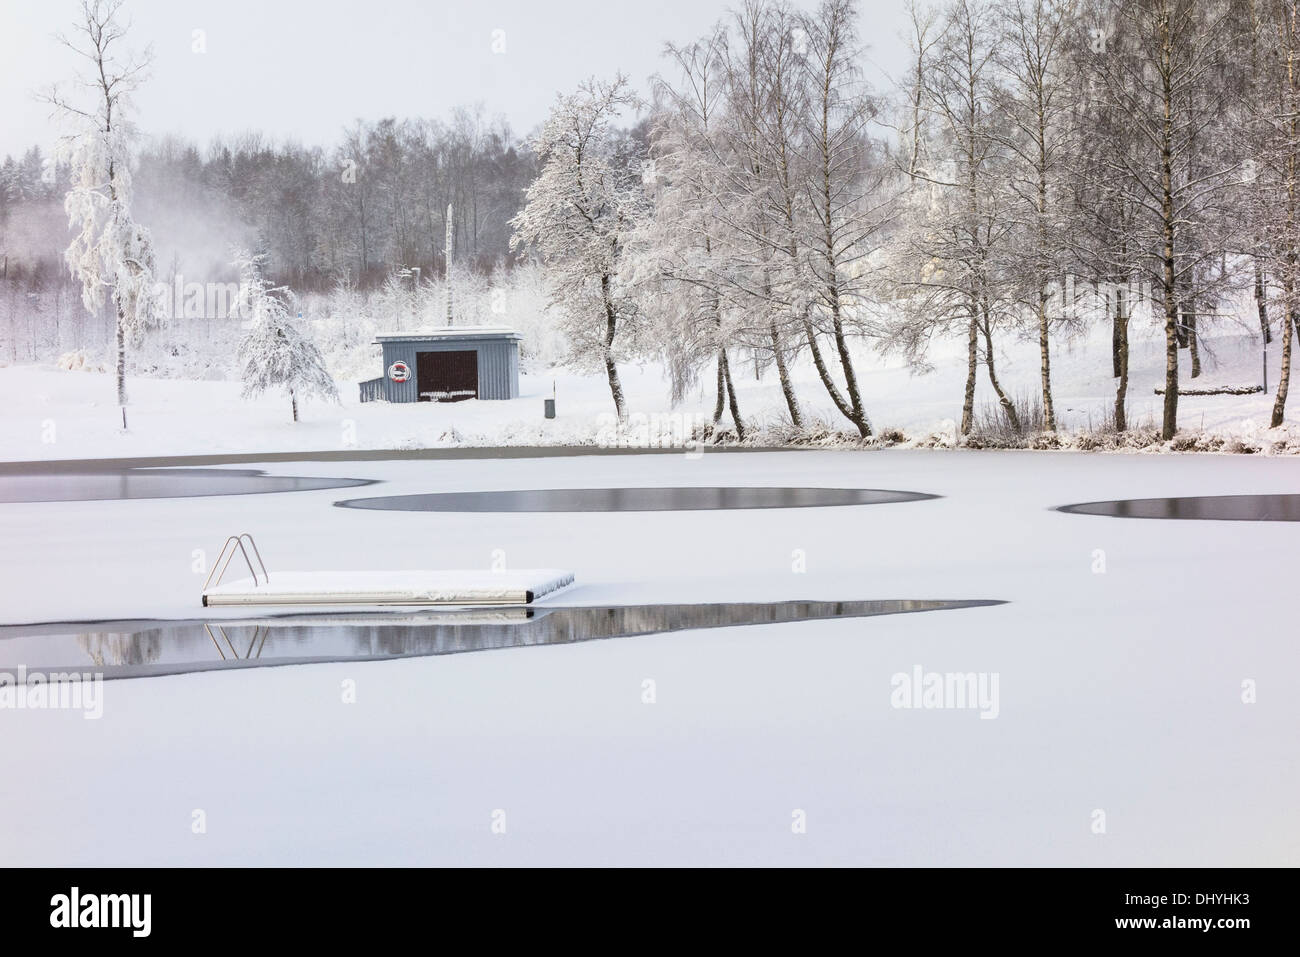 Bathing place with bridge in winter with snow - Stock Image